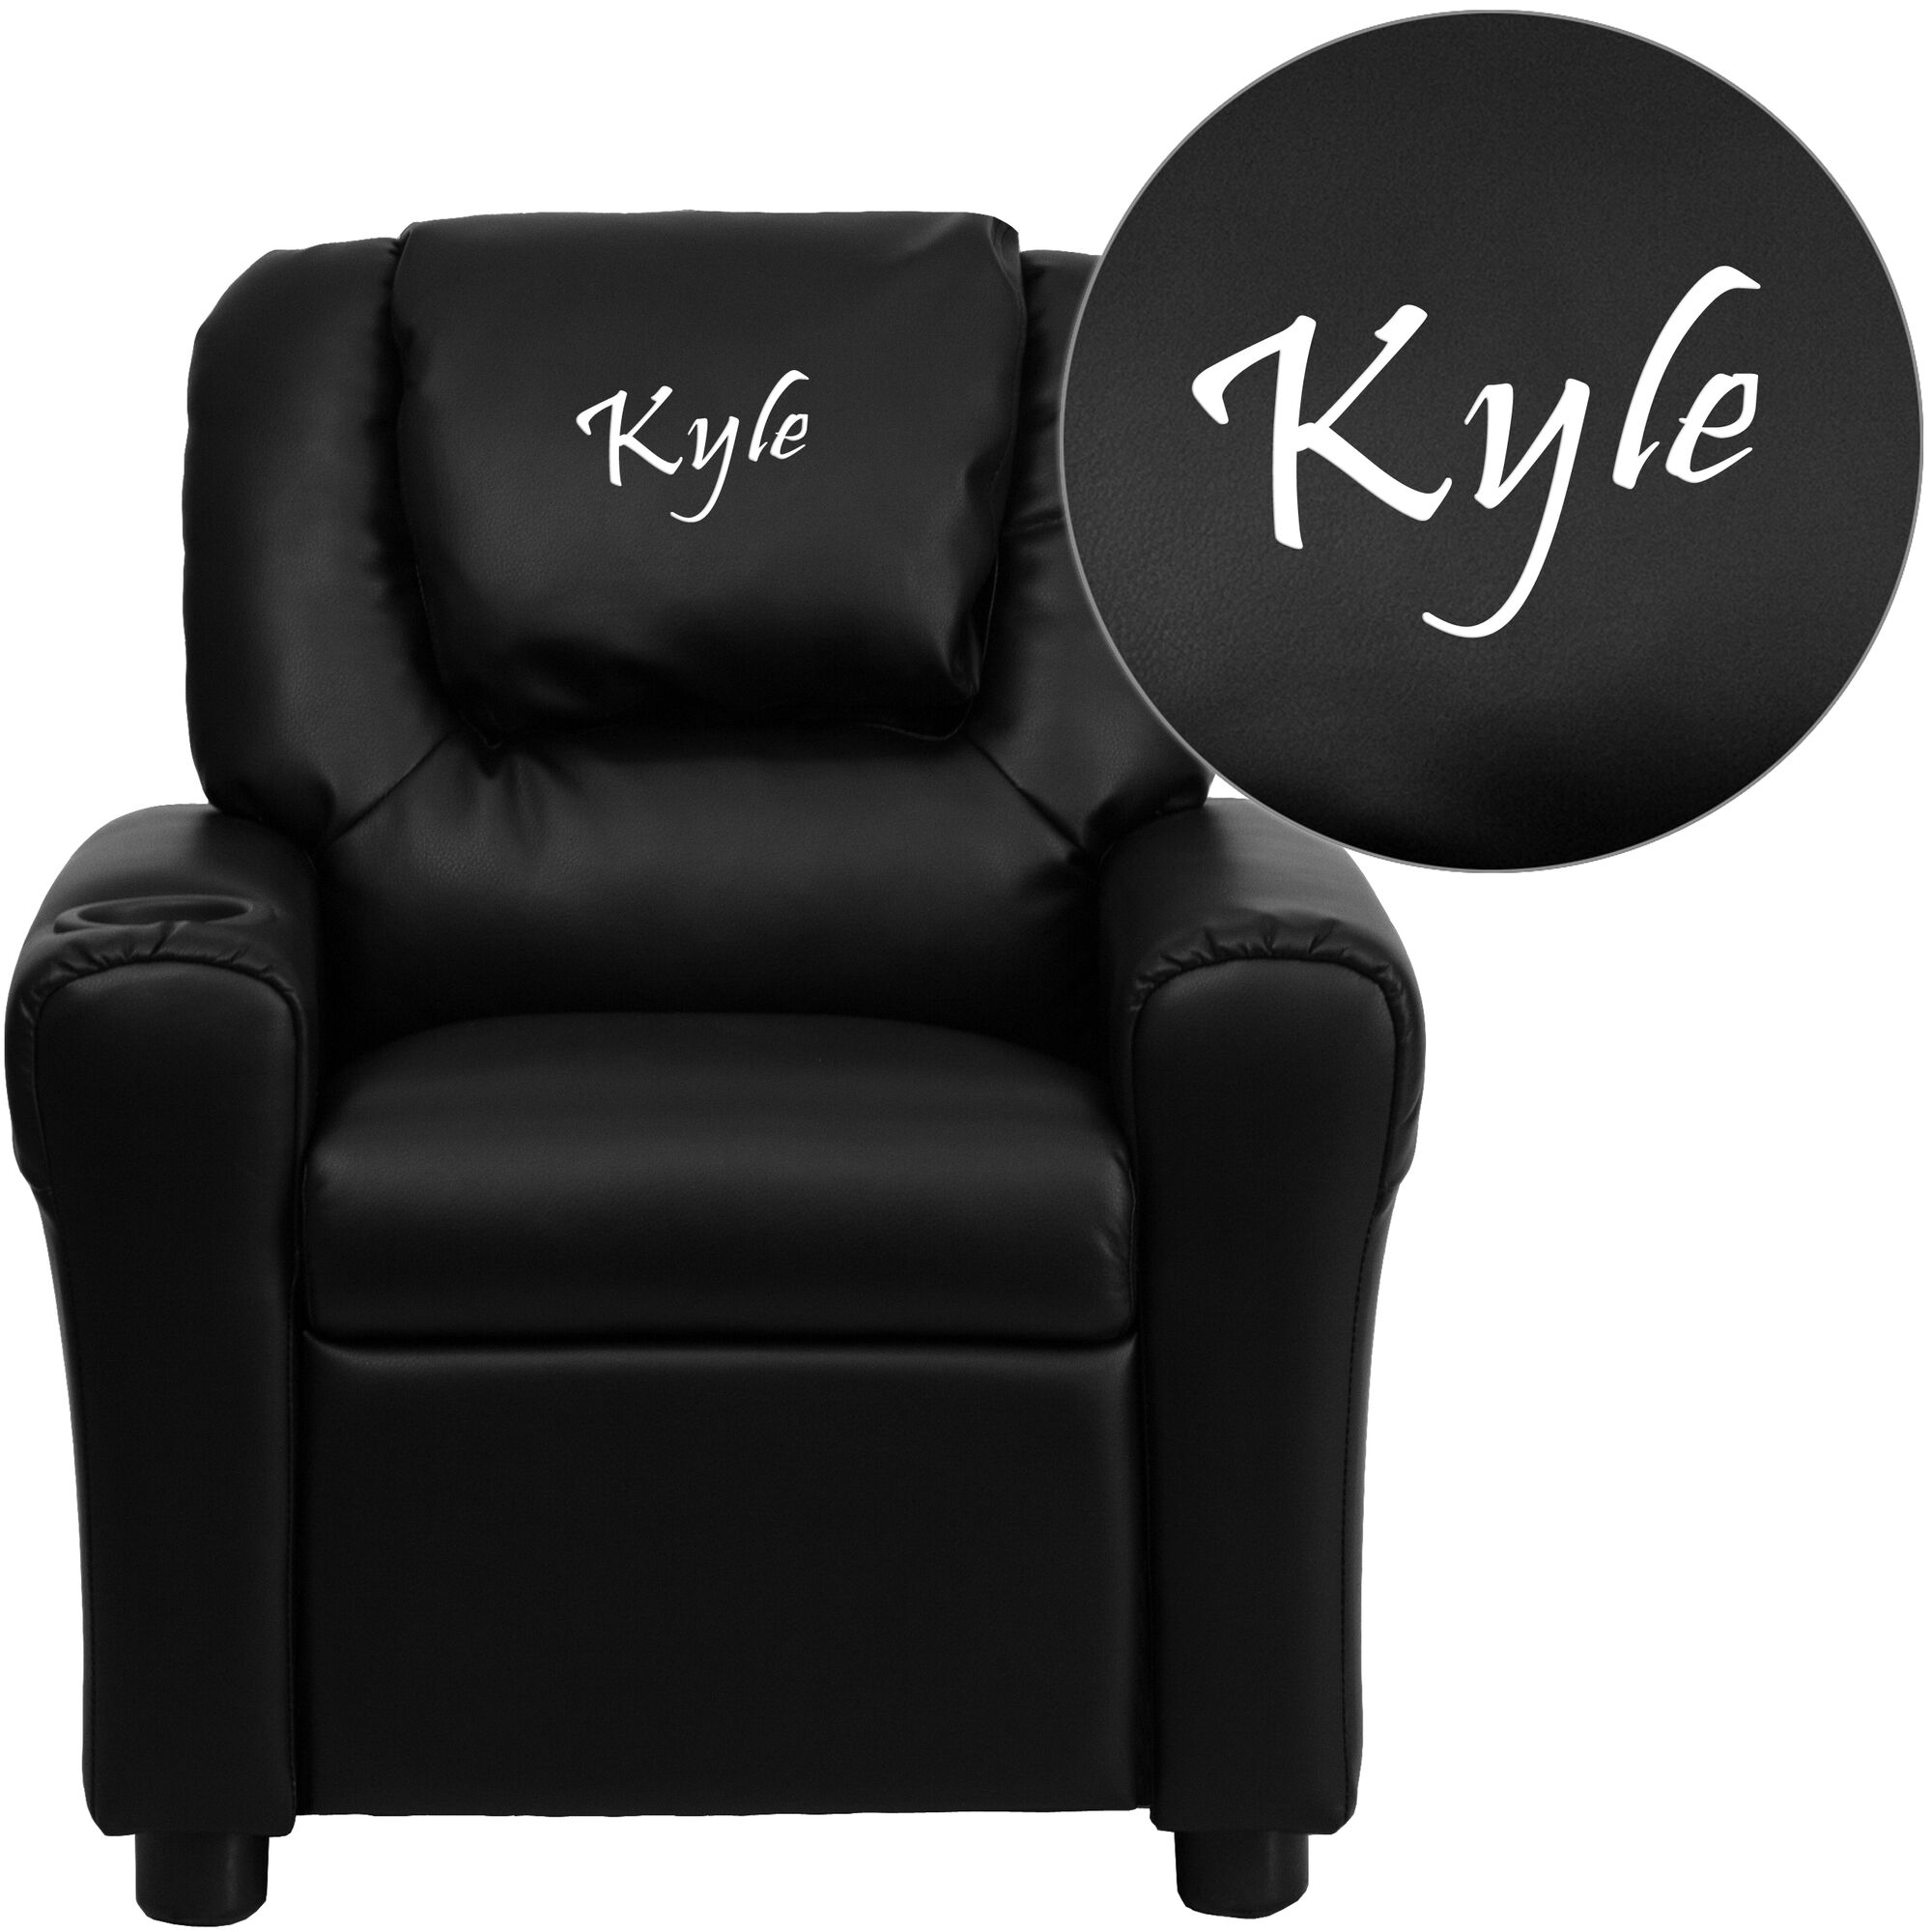 Pleasing Personalized Black Leather Kids Recliner With Cup Holder And Headrest Pabps2019 Chair Design Images Pabps2019Com